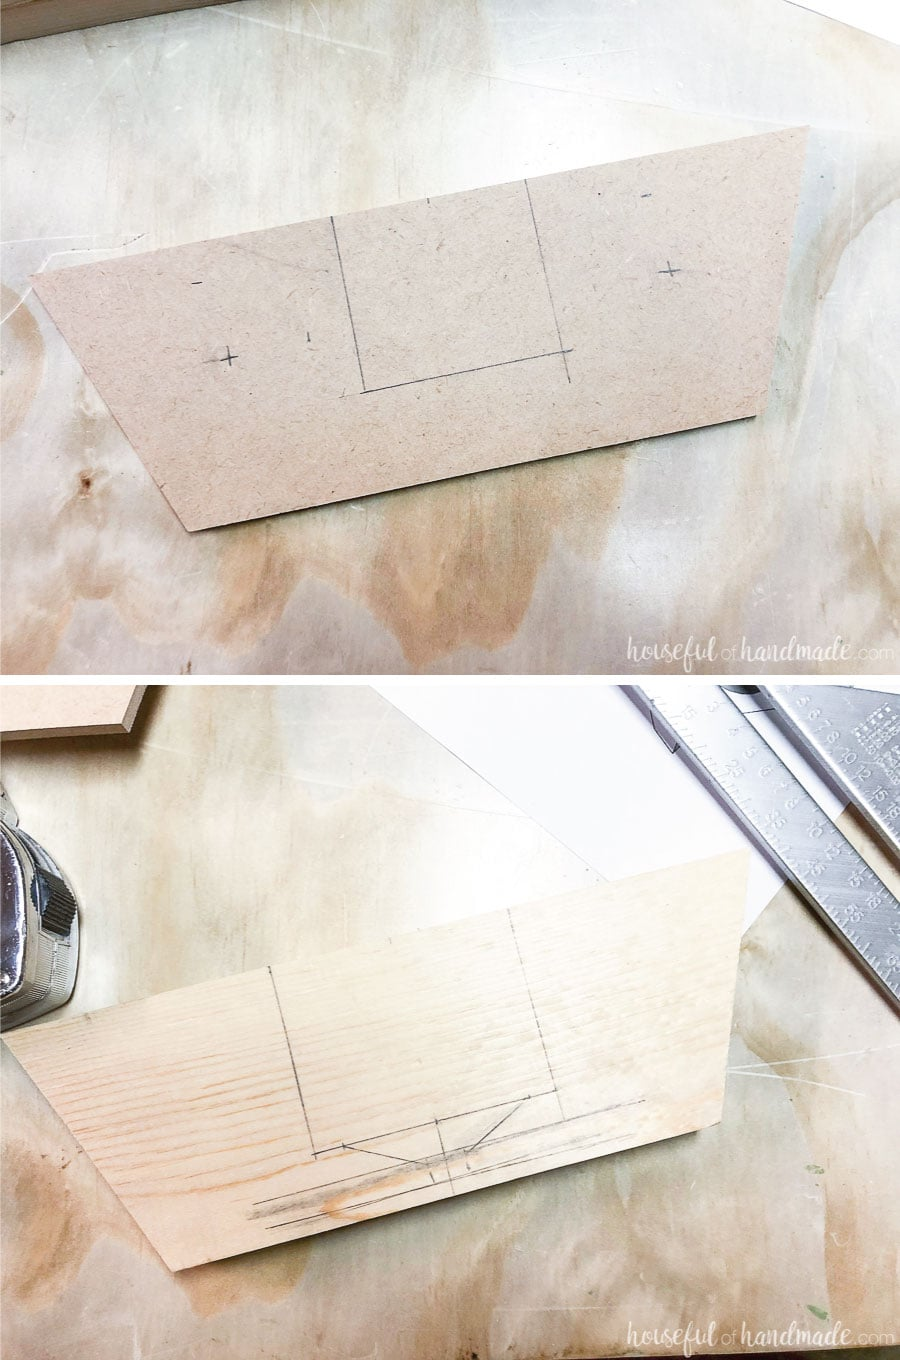 Marking the position of the cutting and drilling for the DIY phone speaker.